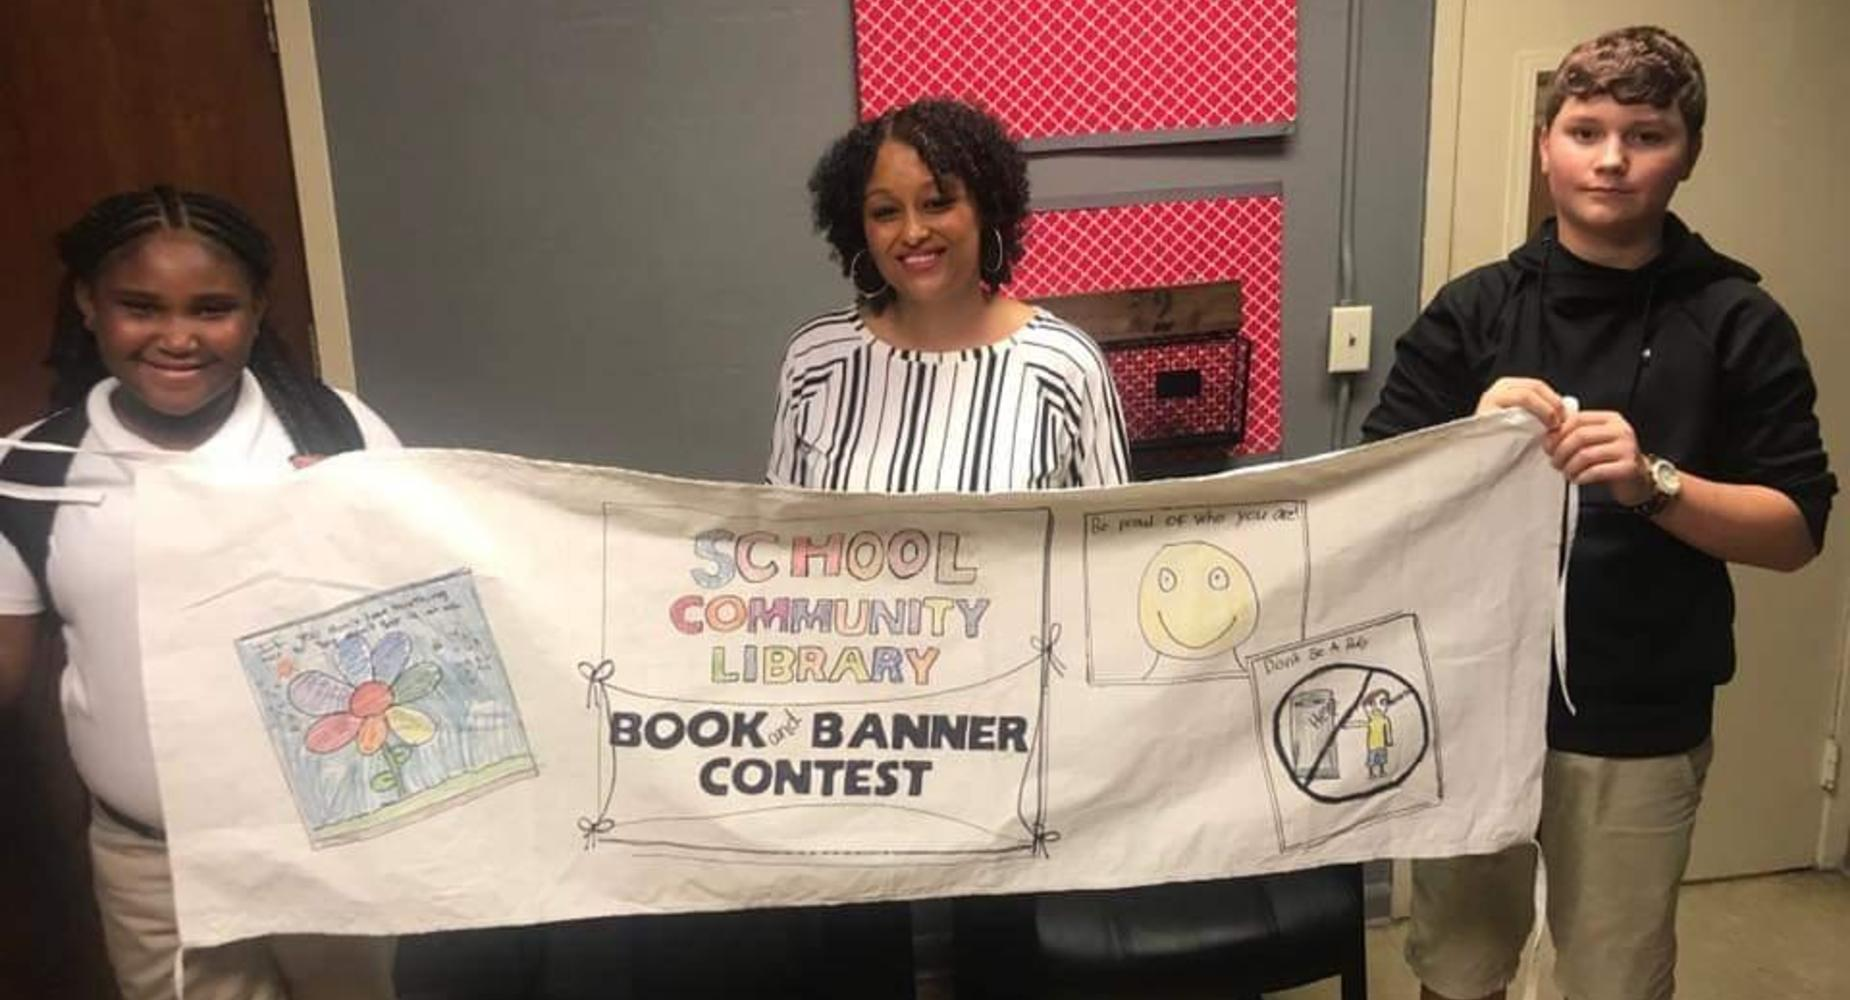 MS.RICHARD'S 5TH GRADE CLASS PARTICIPATED IN THE LIBRARY'S BOOK BANNER CONTEST!